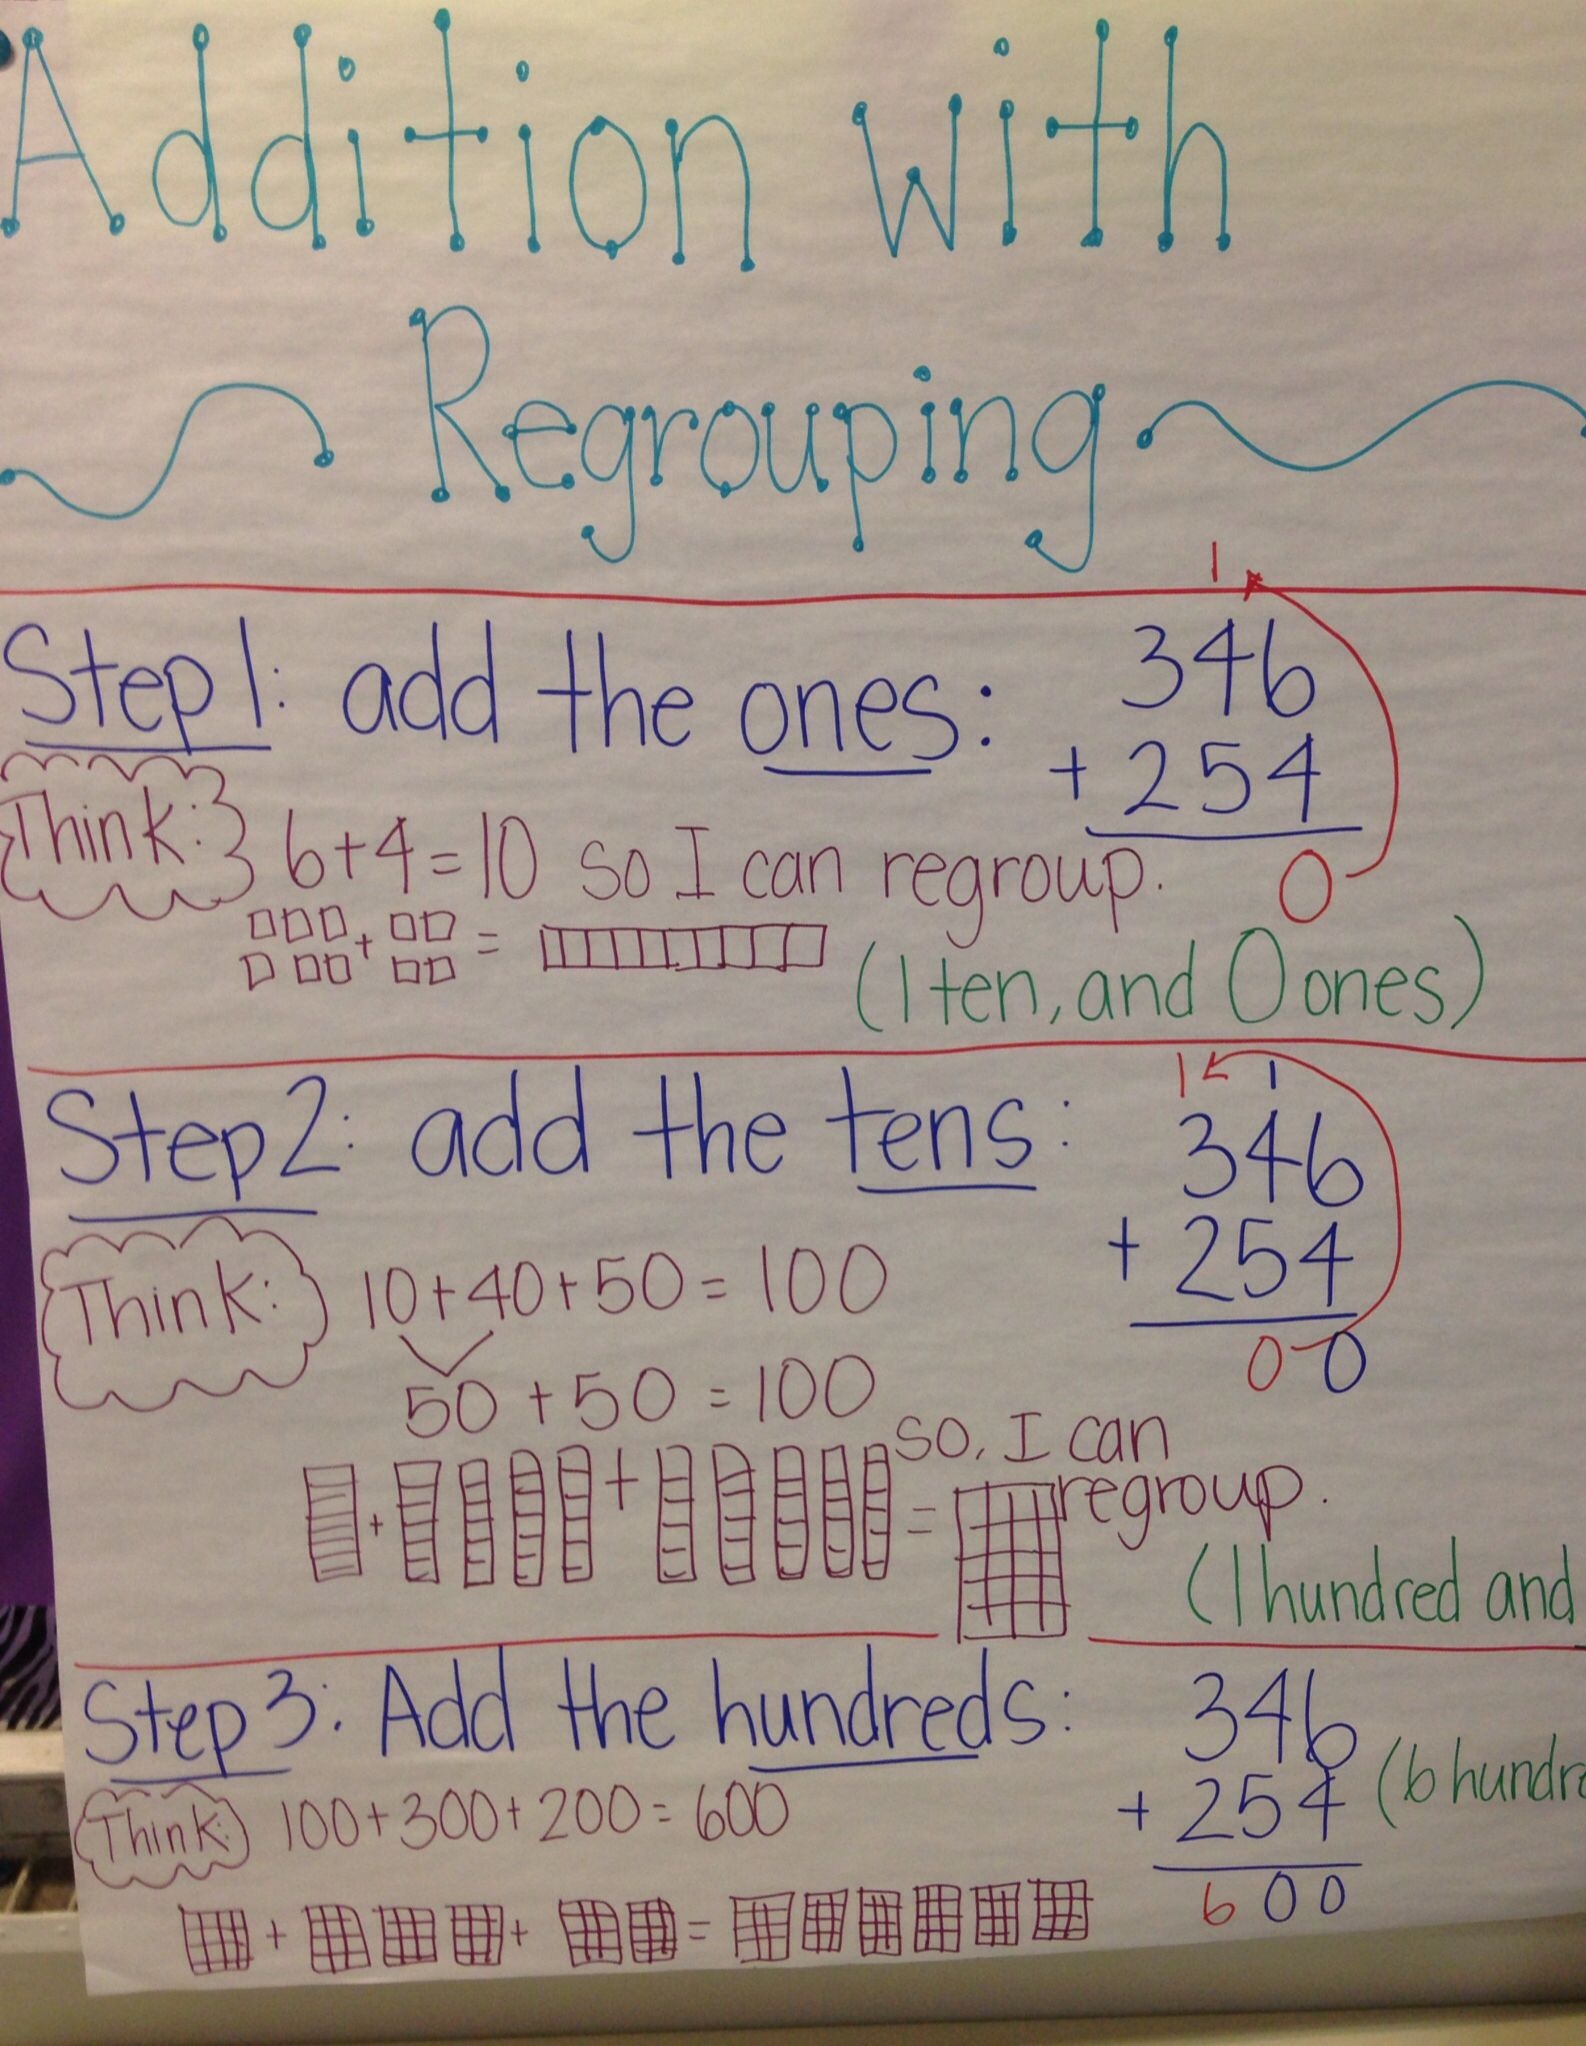 Addition With Regrouping Anchor Chart Classroom Anchor Charts Anchor Charts Subtraction Anchor Chart How to explain addition with regrouping